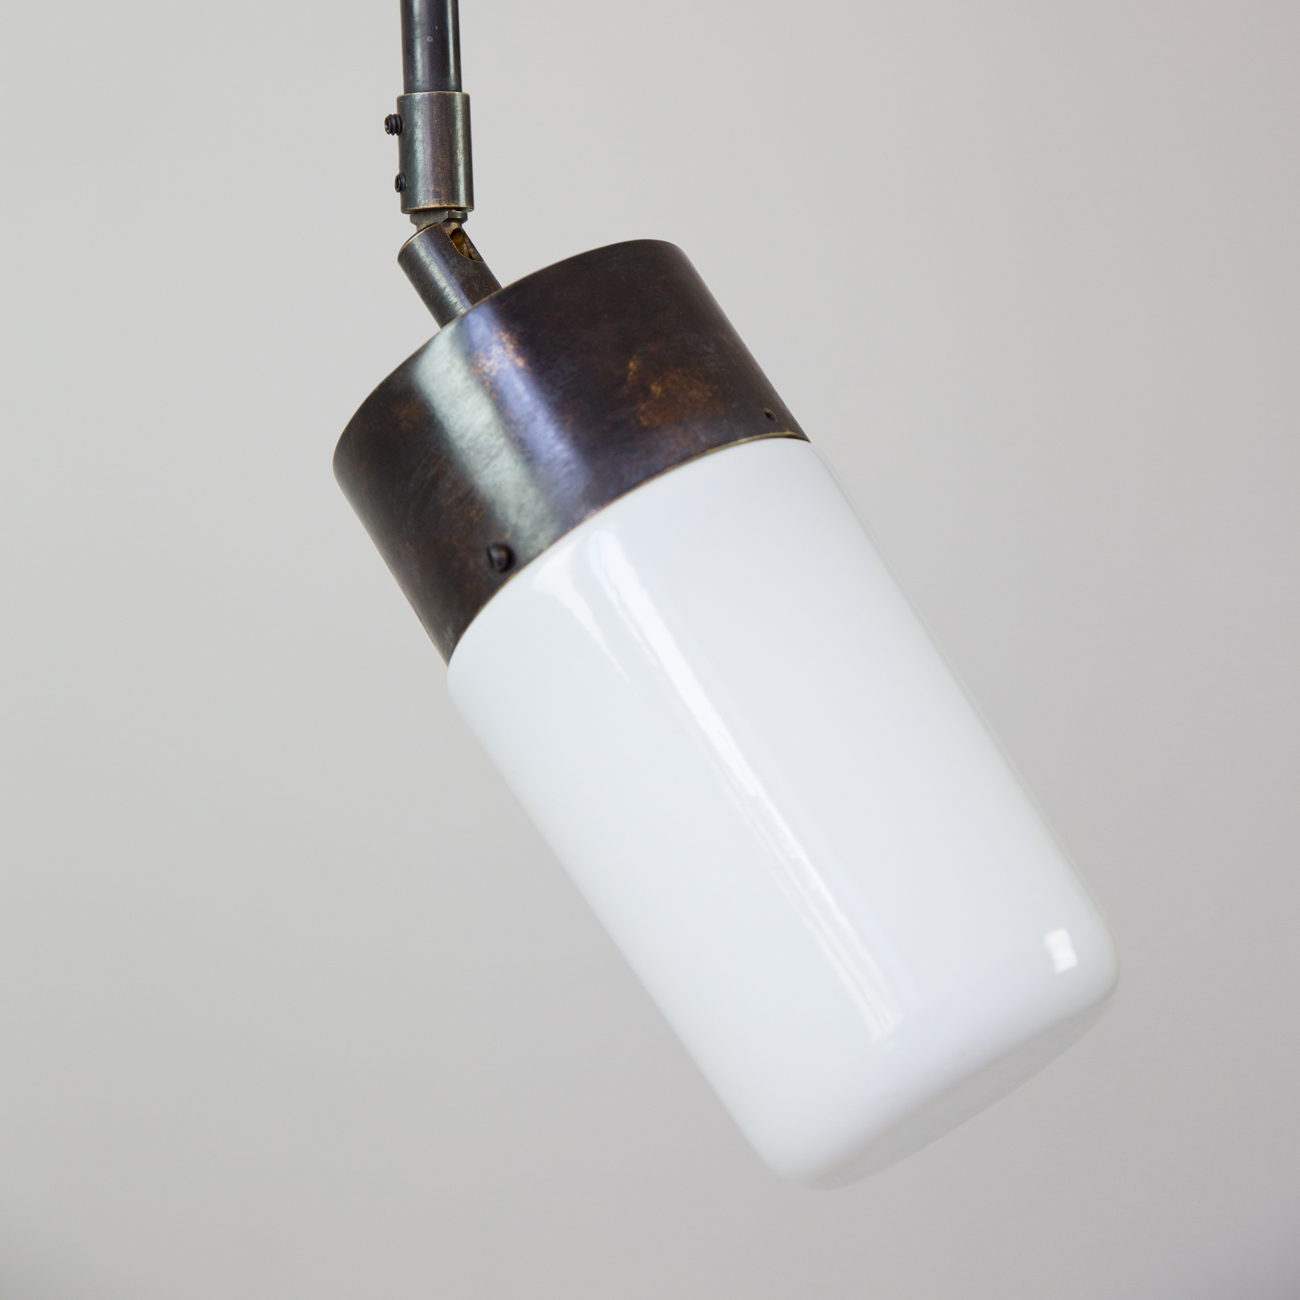 Pendant-Model-03-whole-unlit-shade.jpg